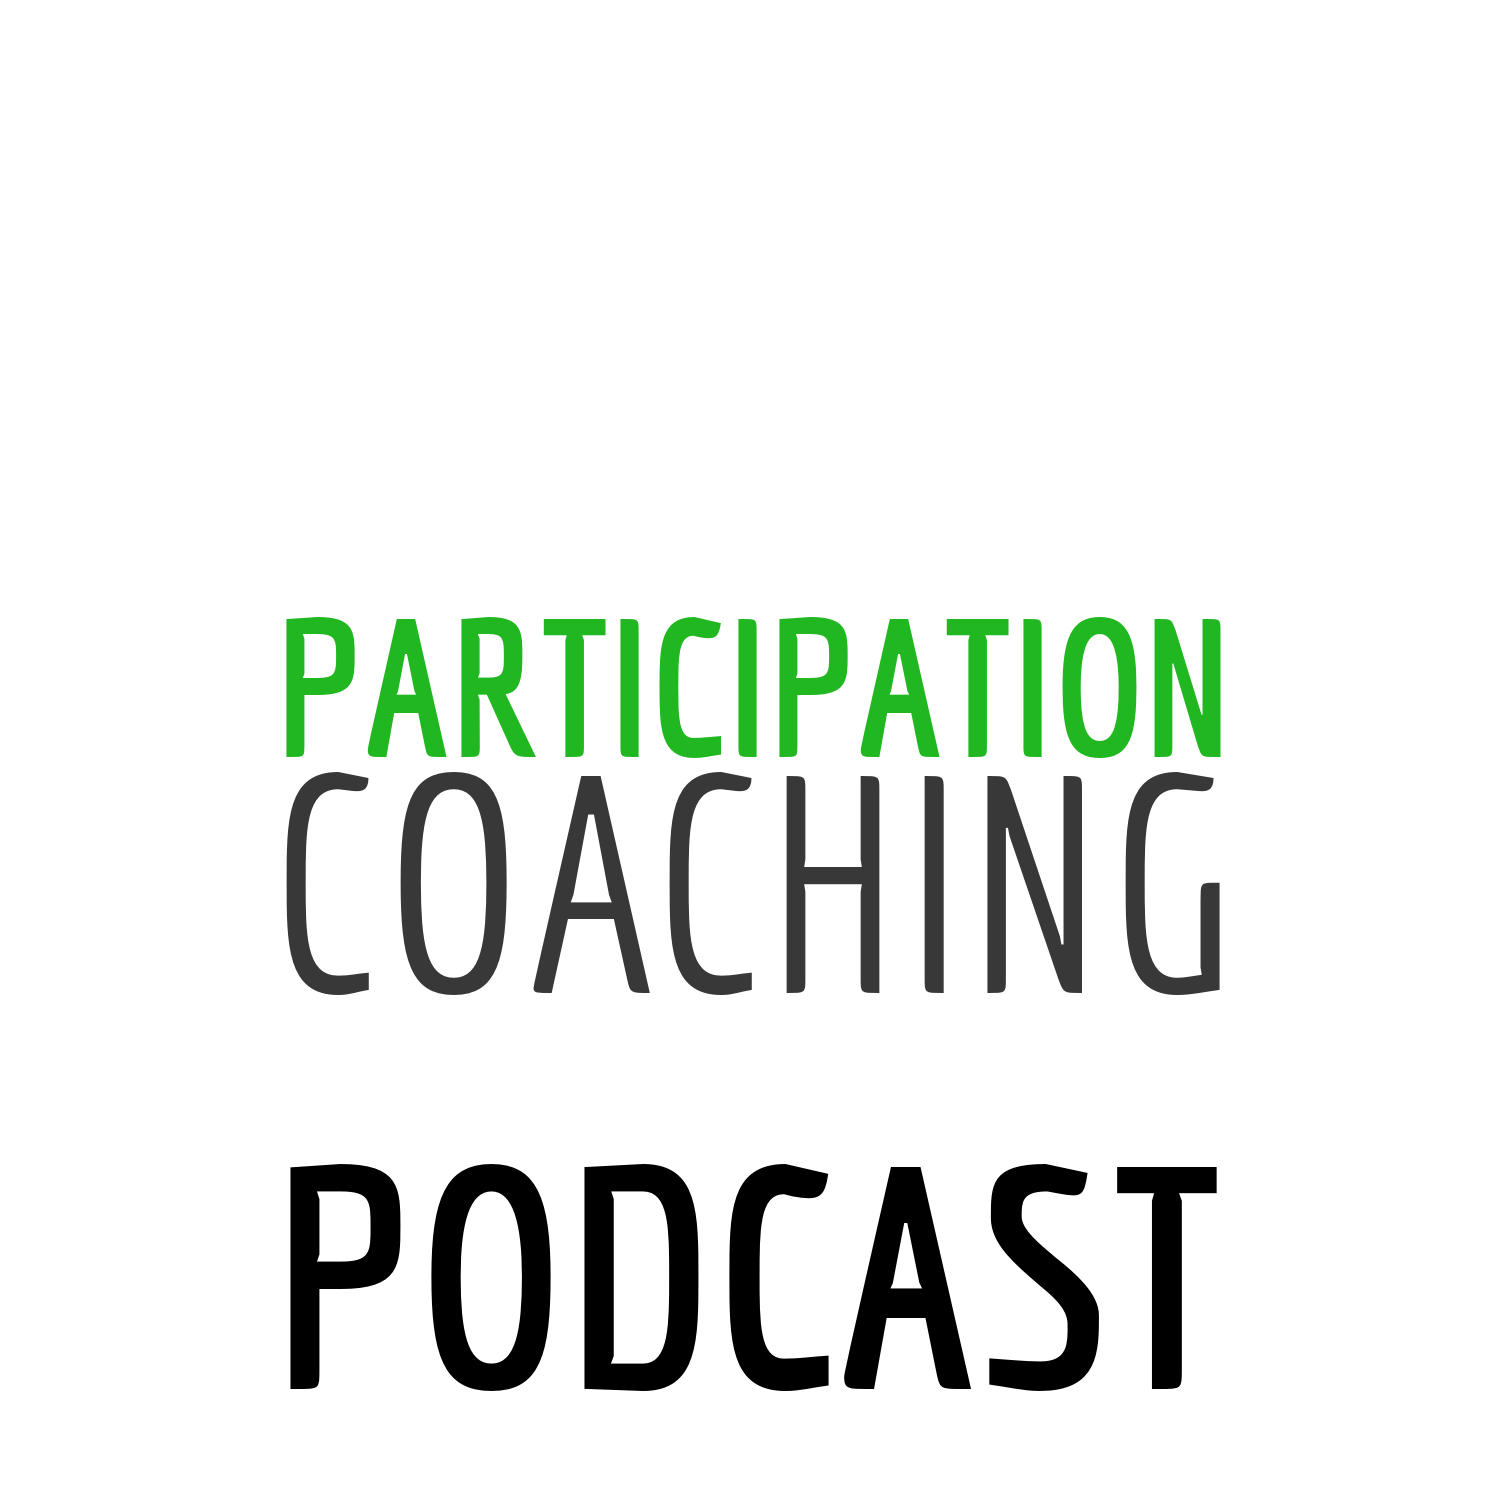 Participation Coaching Podcast